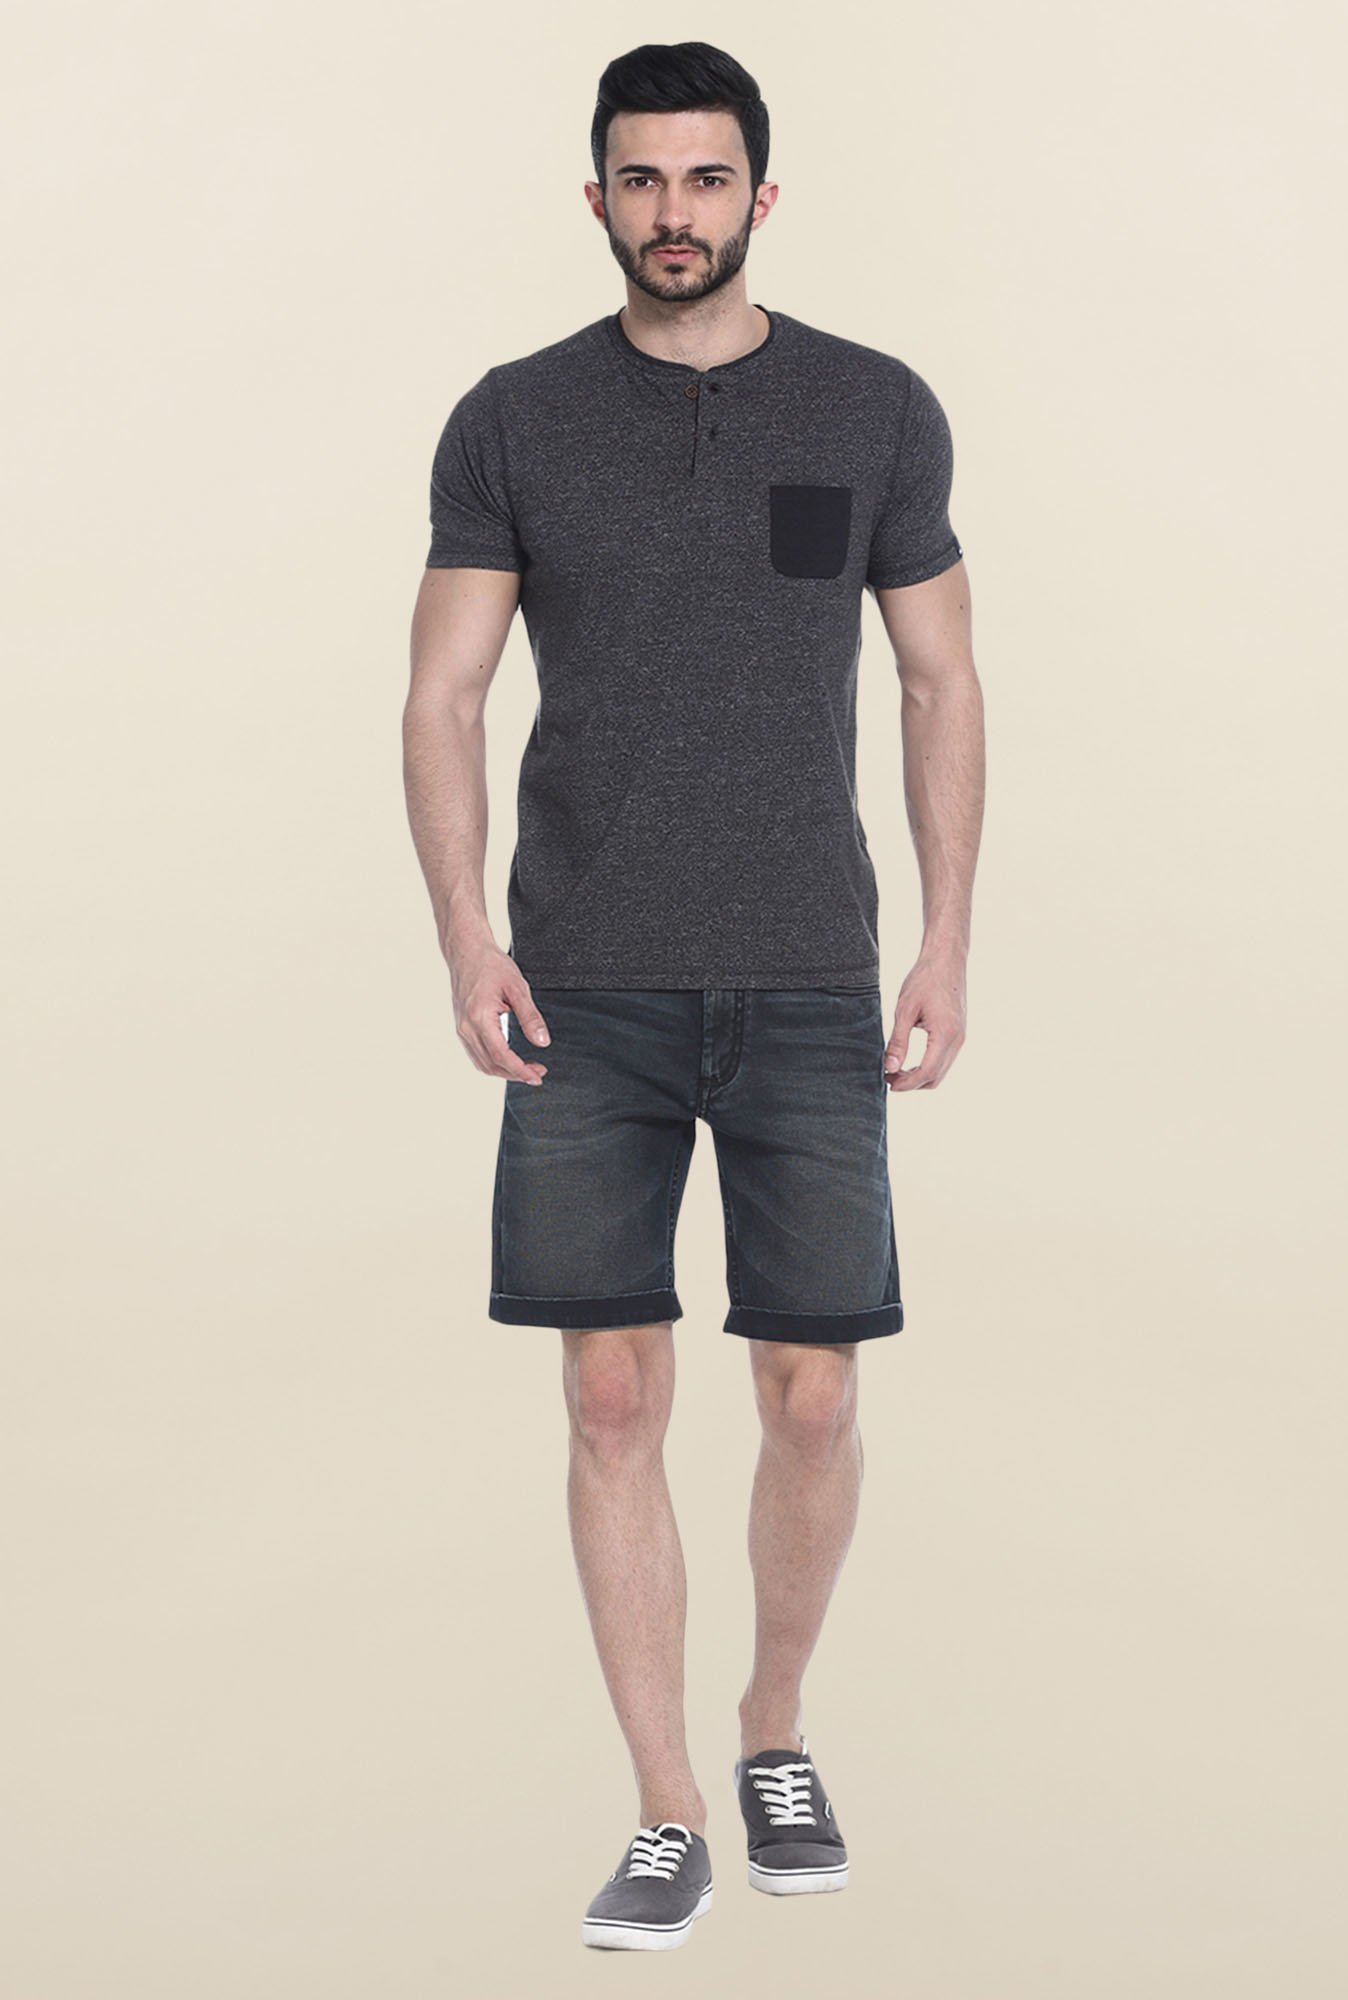 Basics Dark Grey Short Sleeves Solid T-Shirt